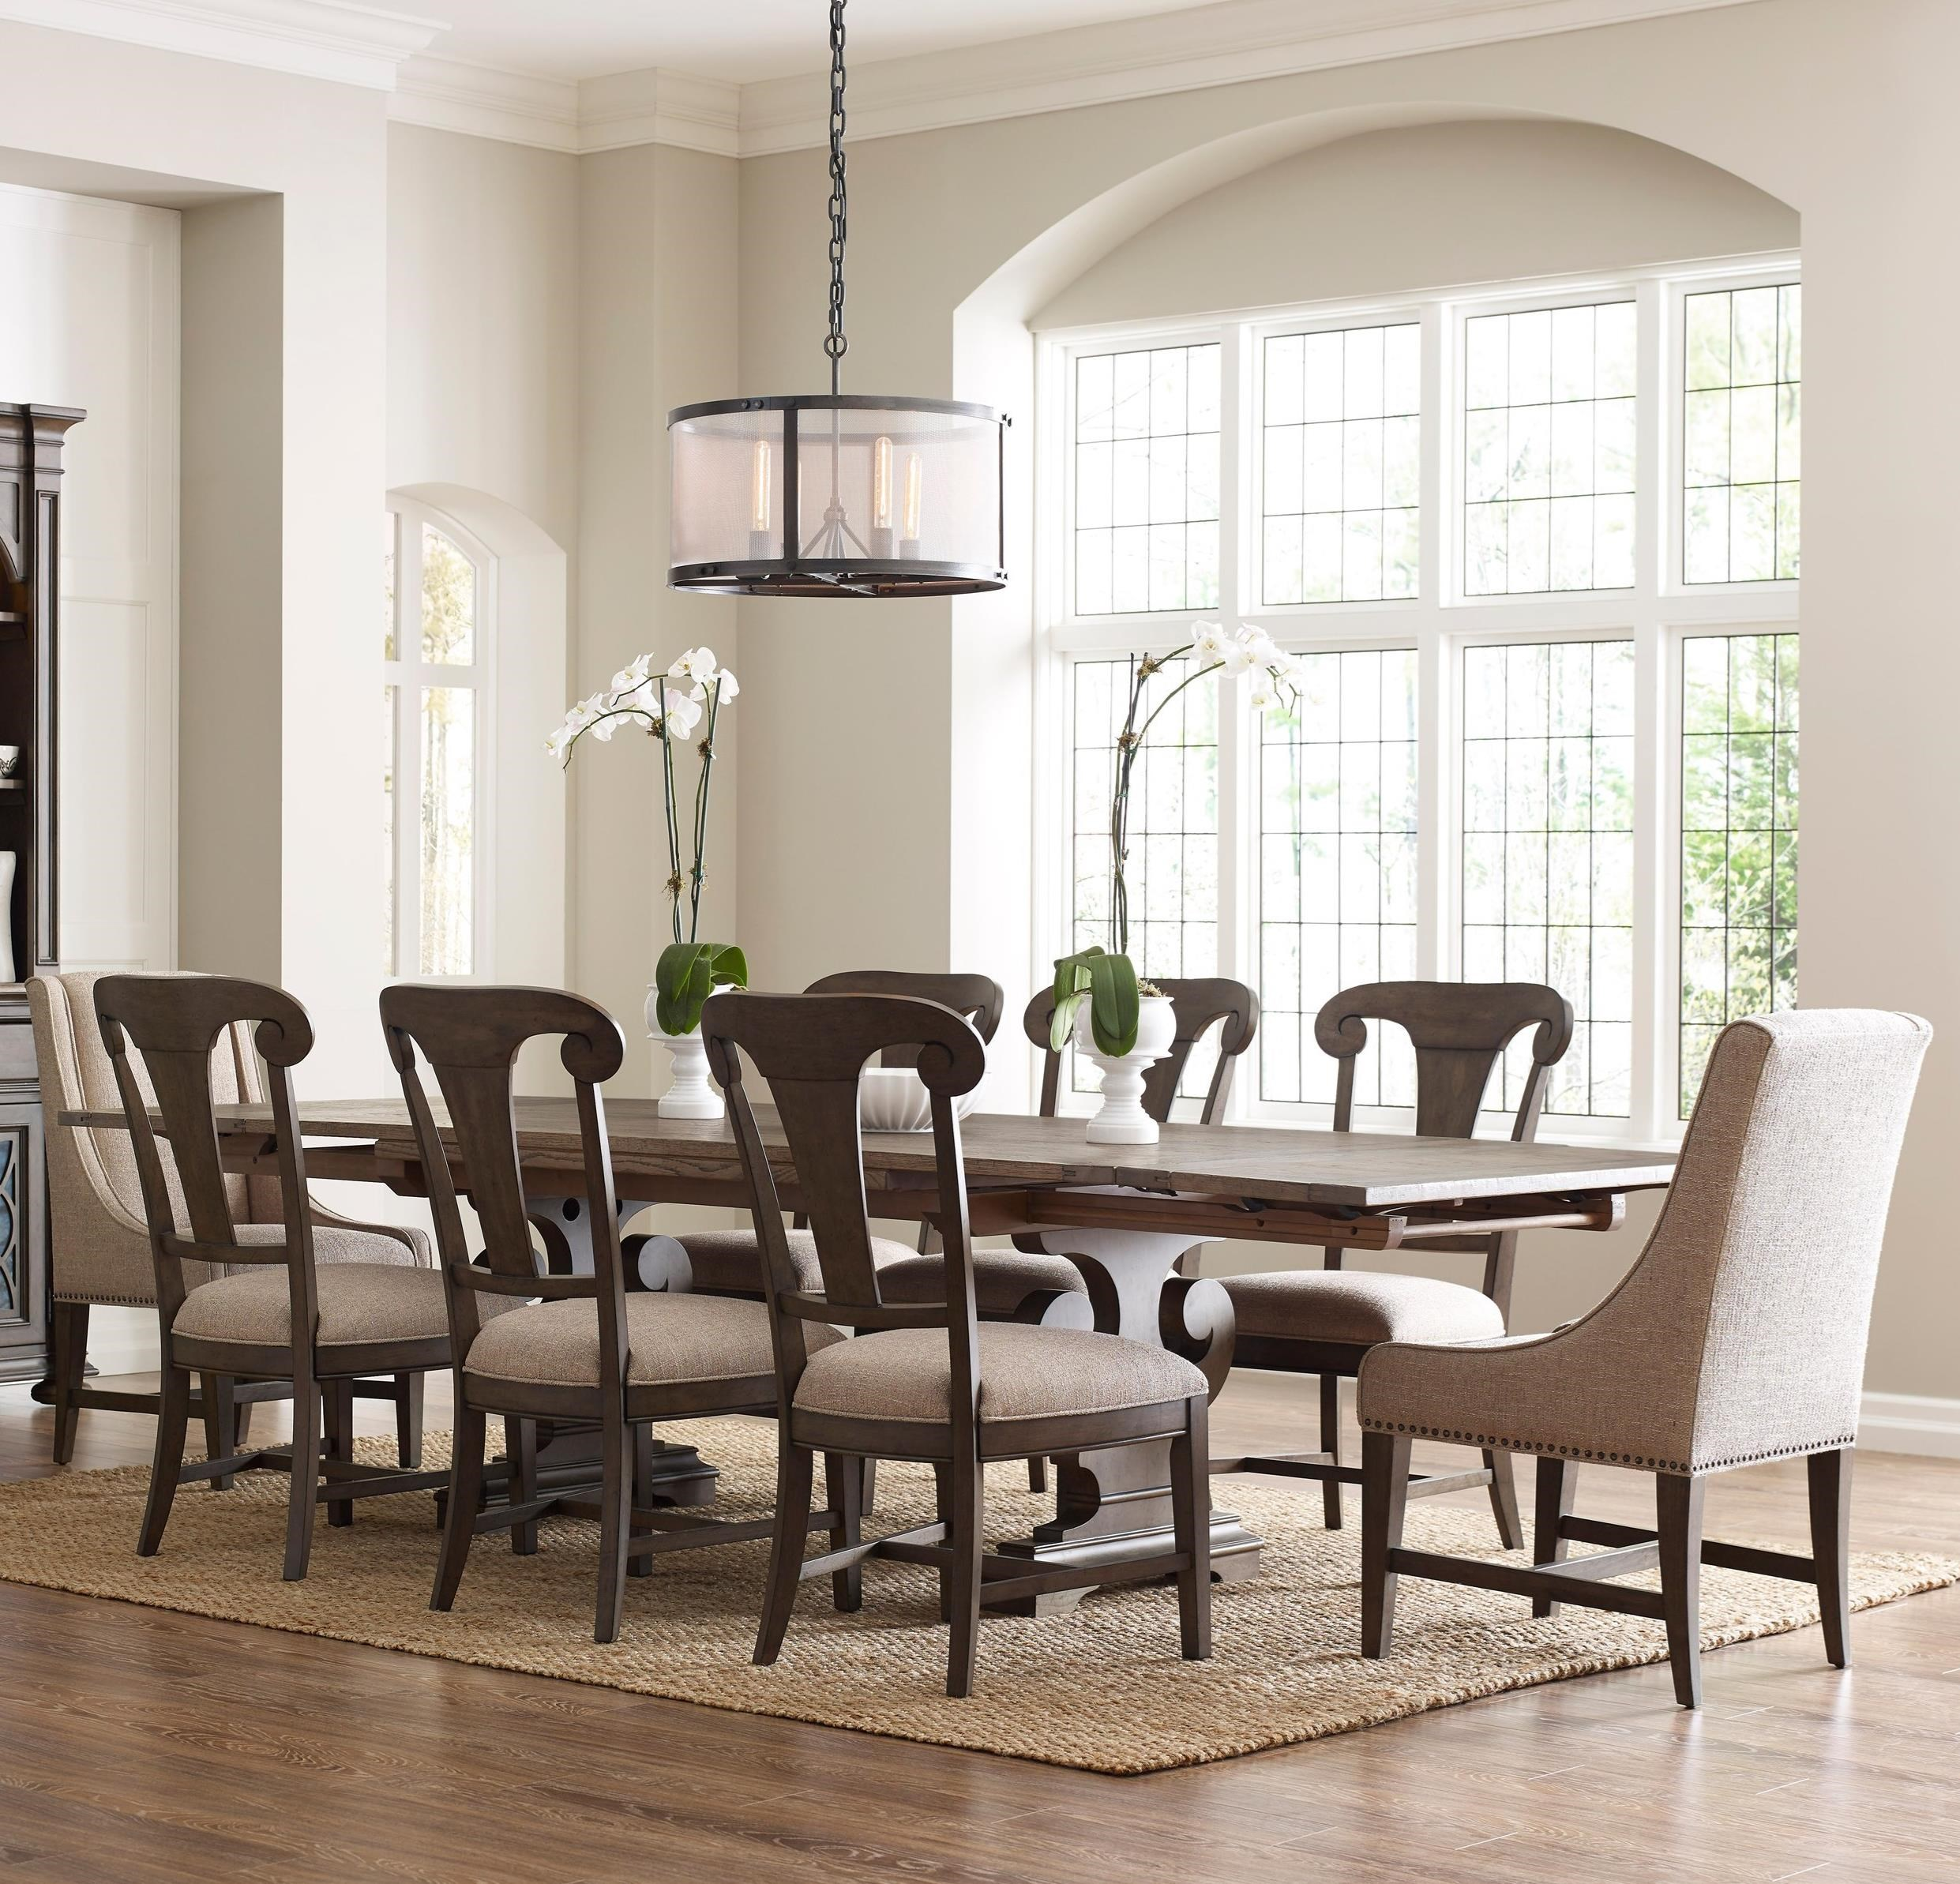 Kincaid Furniture Greyson 9 Pc Dining Set   Item Number: 608 744P+2X608